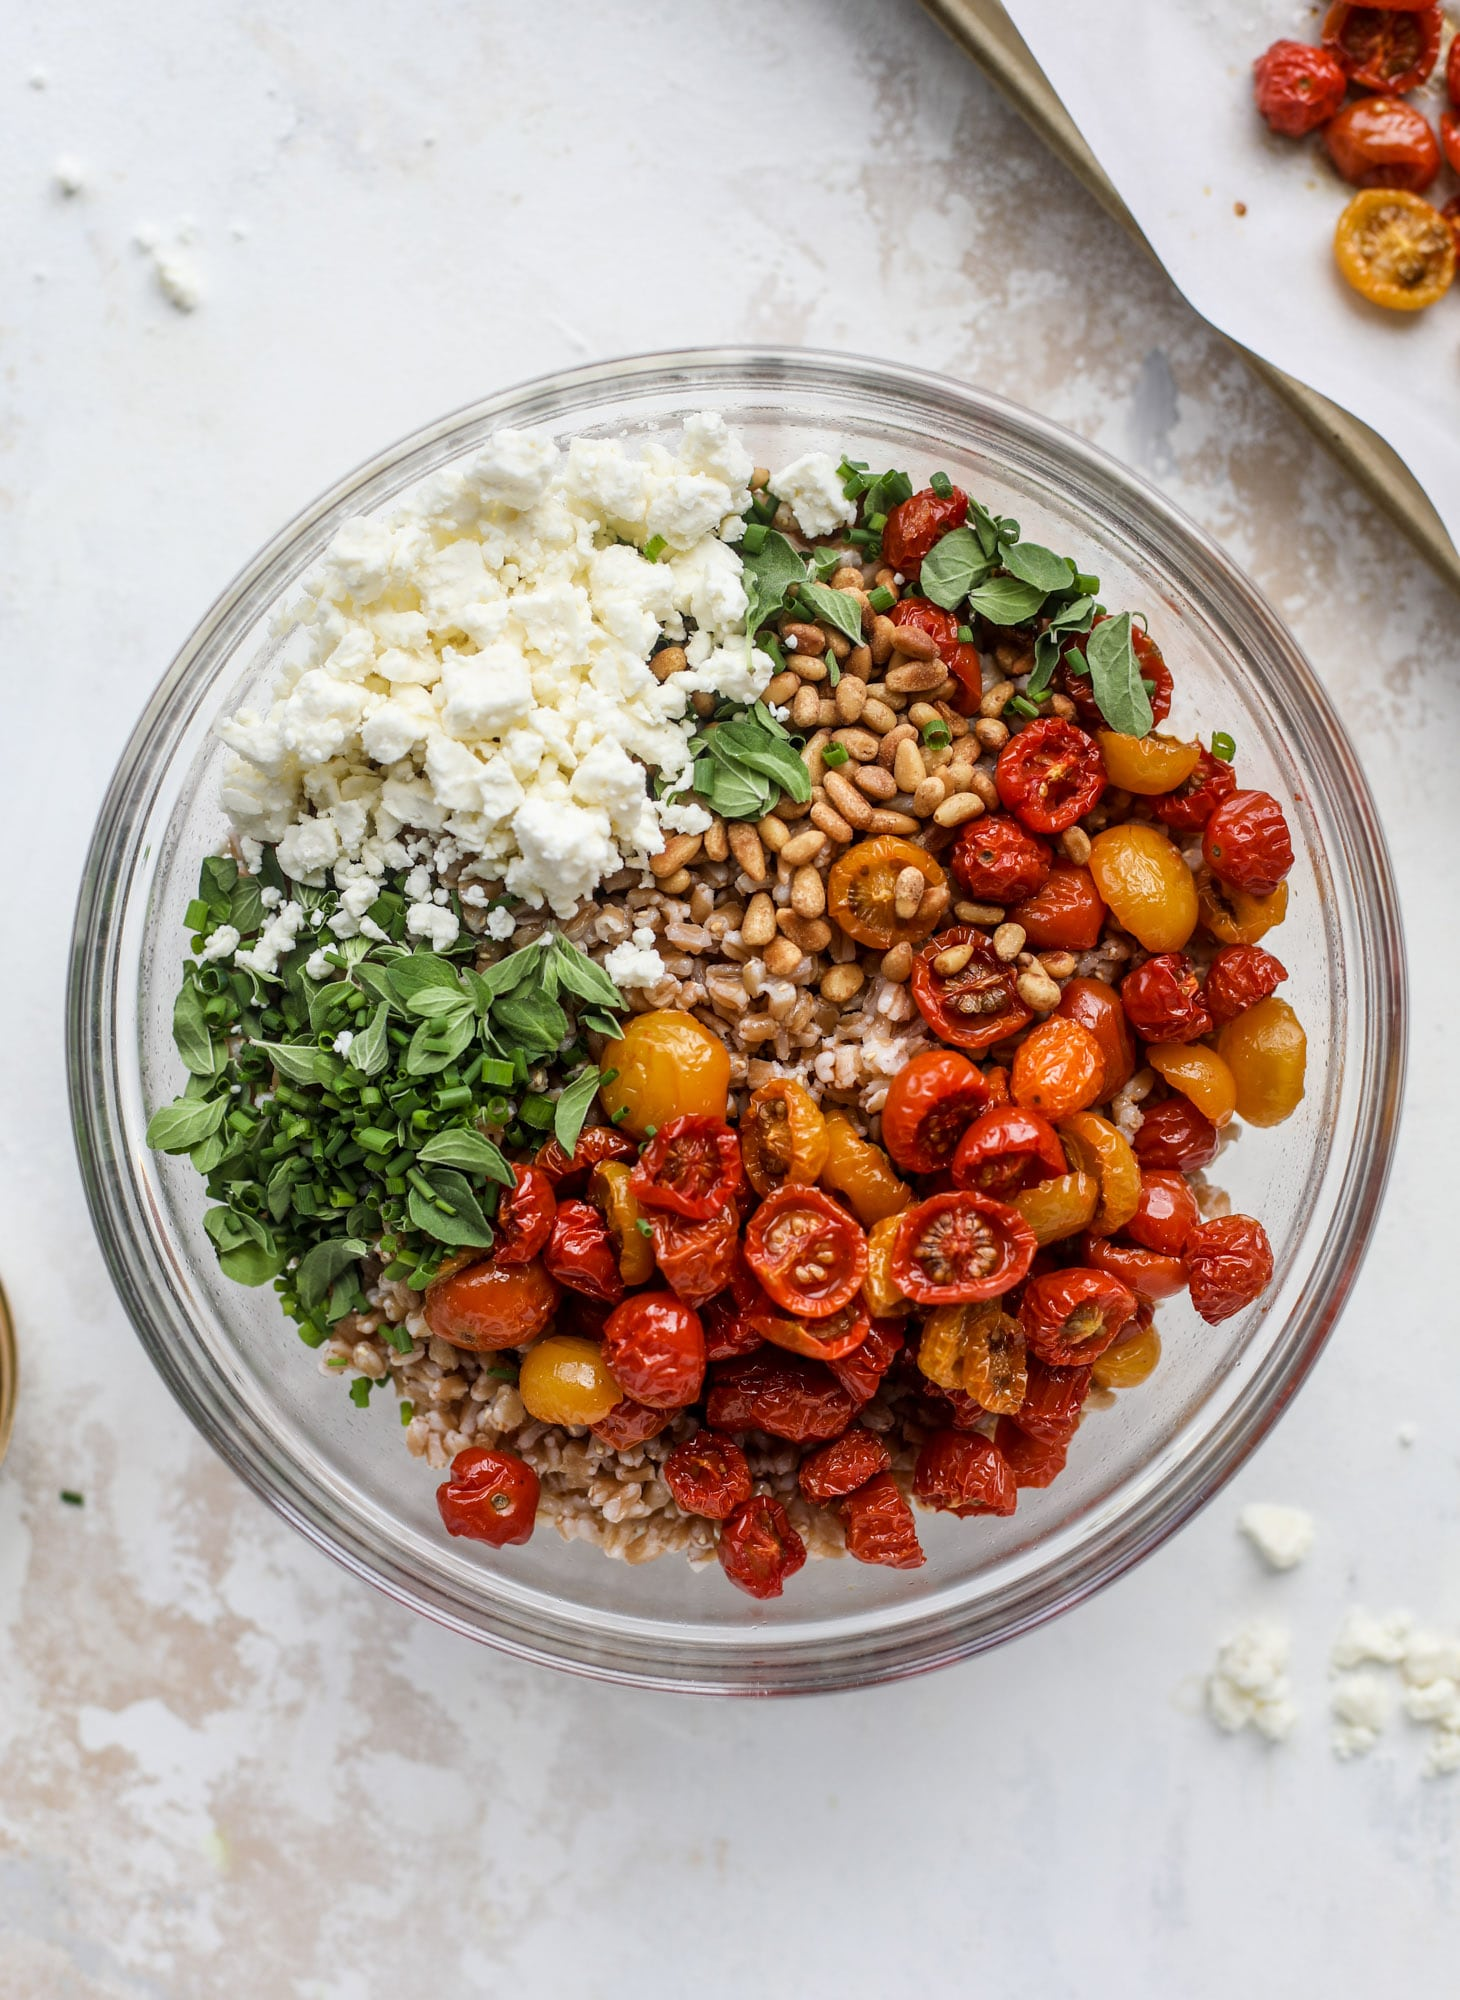 A tomato farro salad that is sweet from the slow roasted tomatoes, tangy from the feta cheese, chewy from the farro and bright from the lemon!